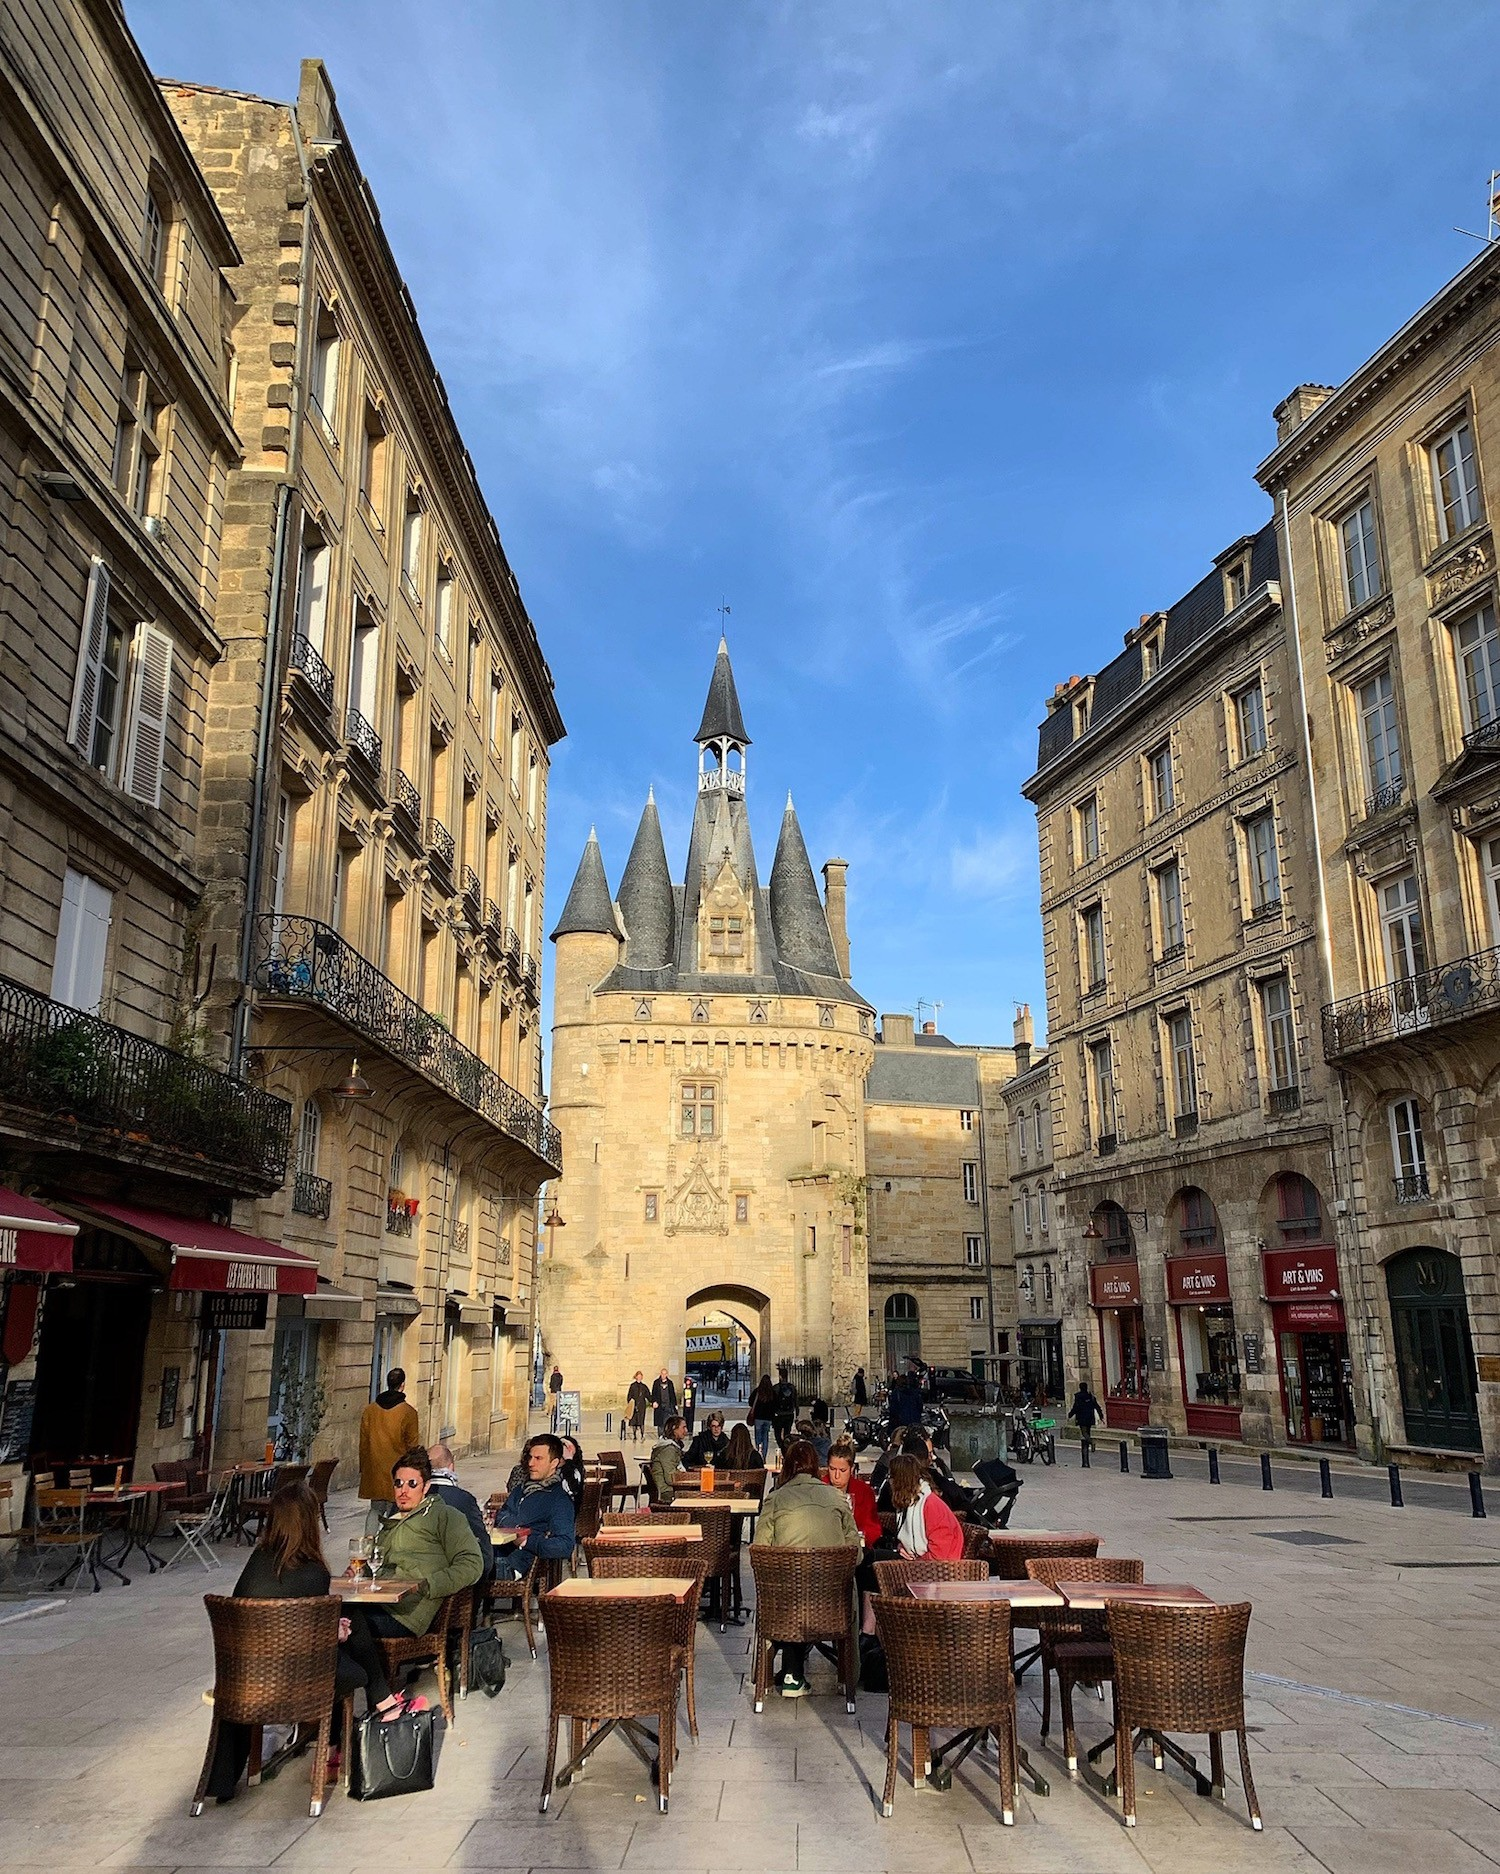 PLACE dU PALAIS BORDEAUX